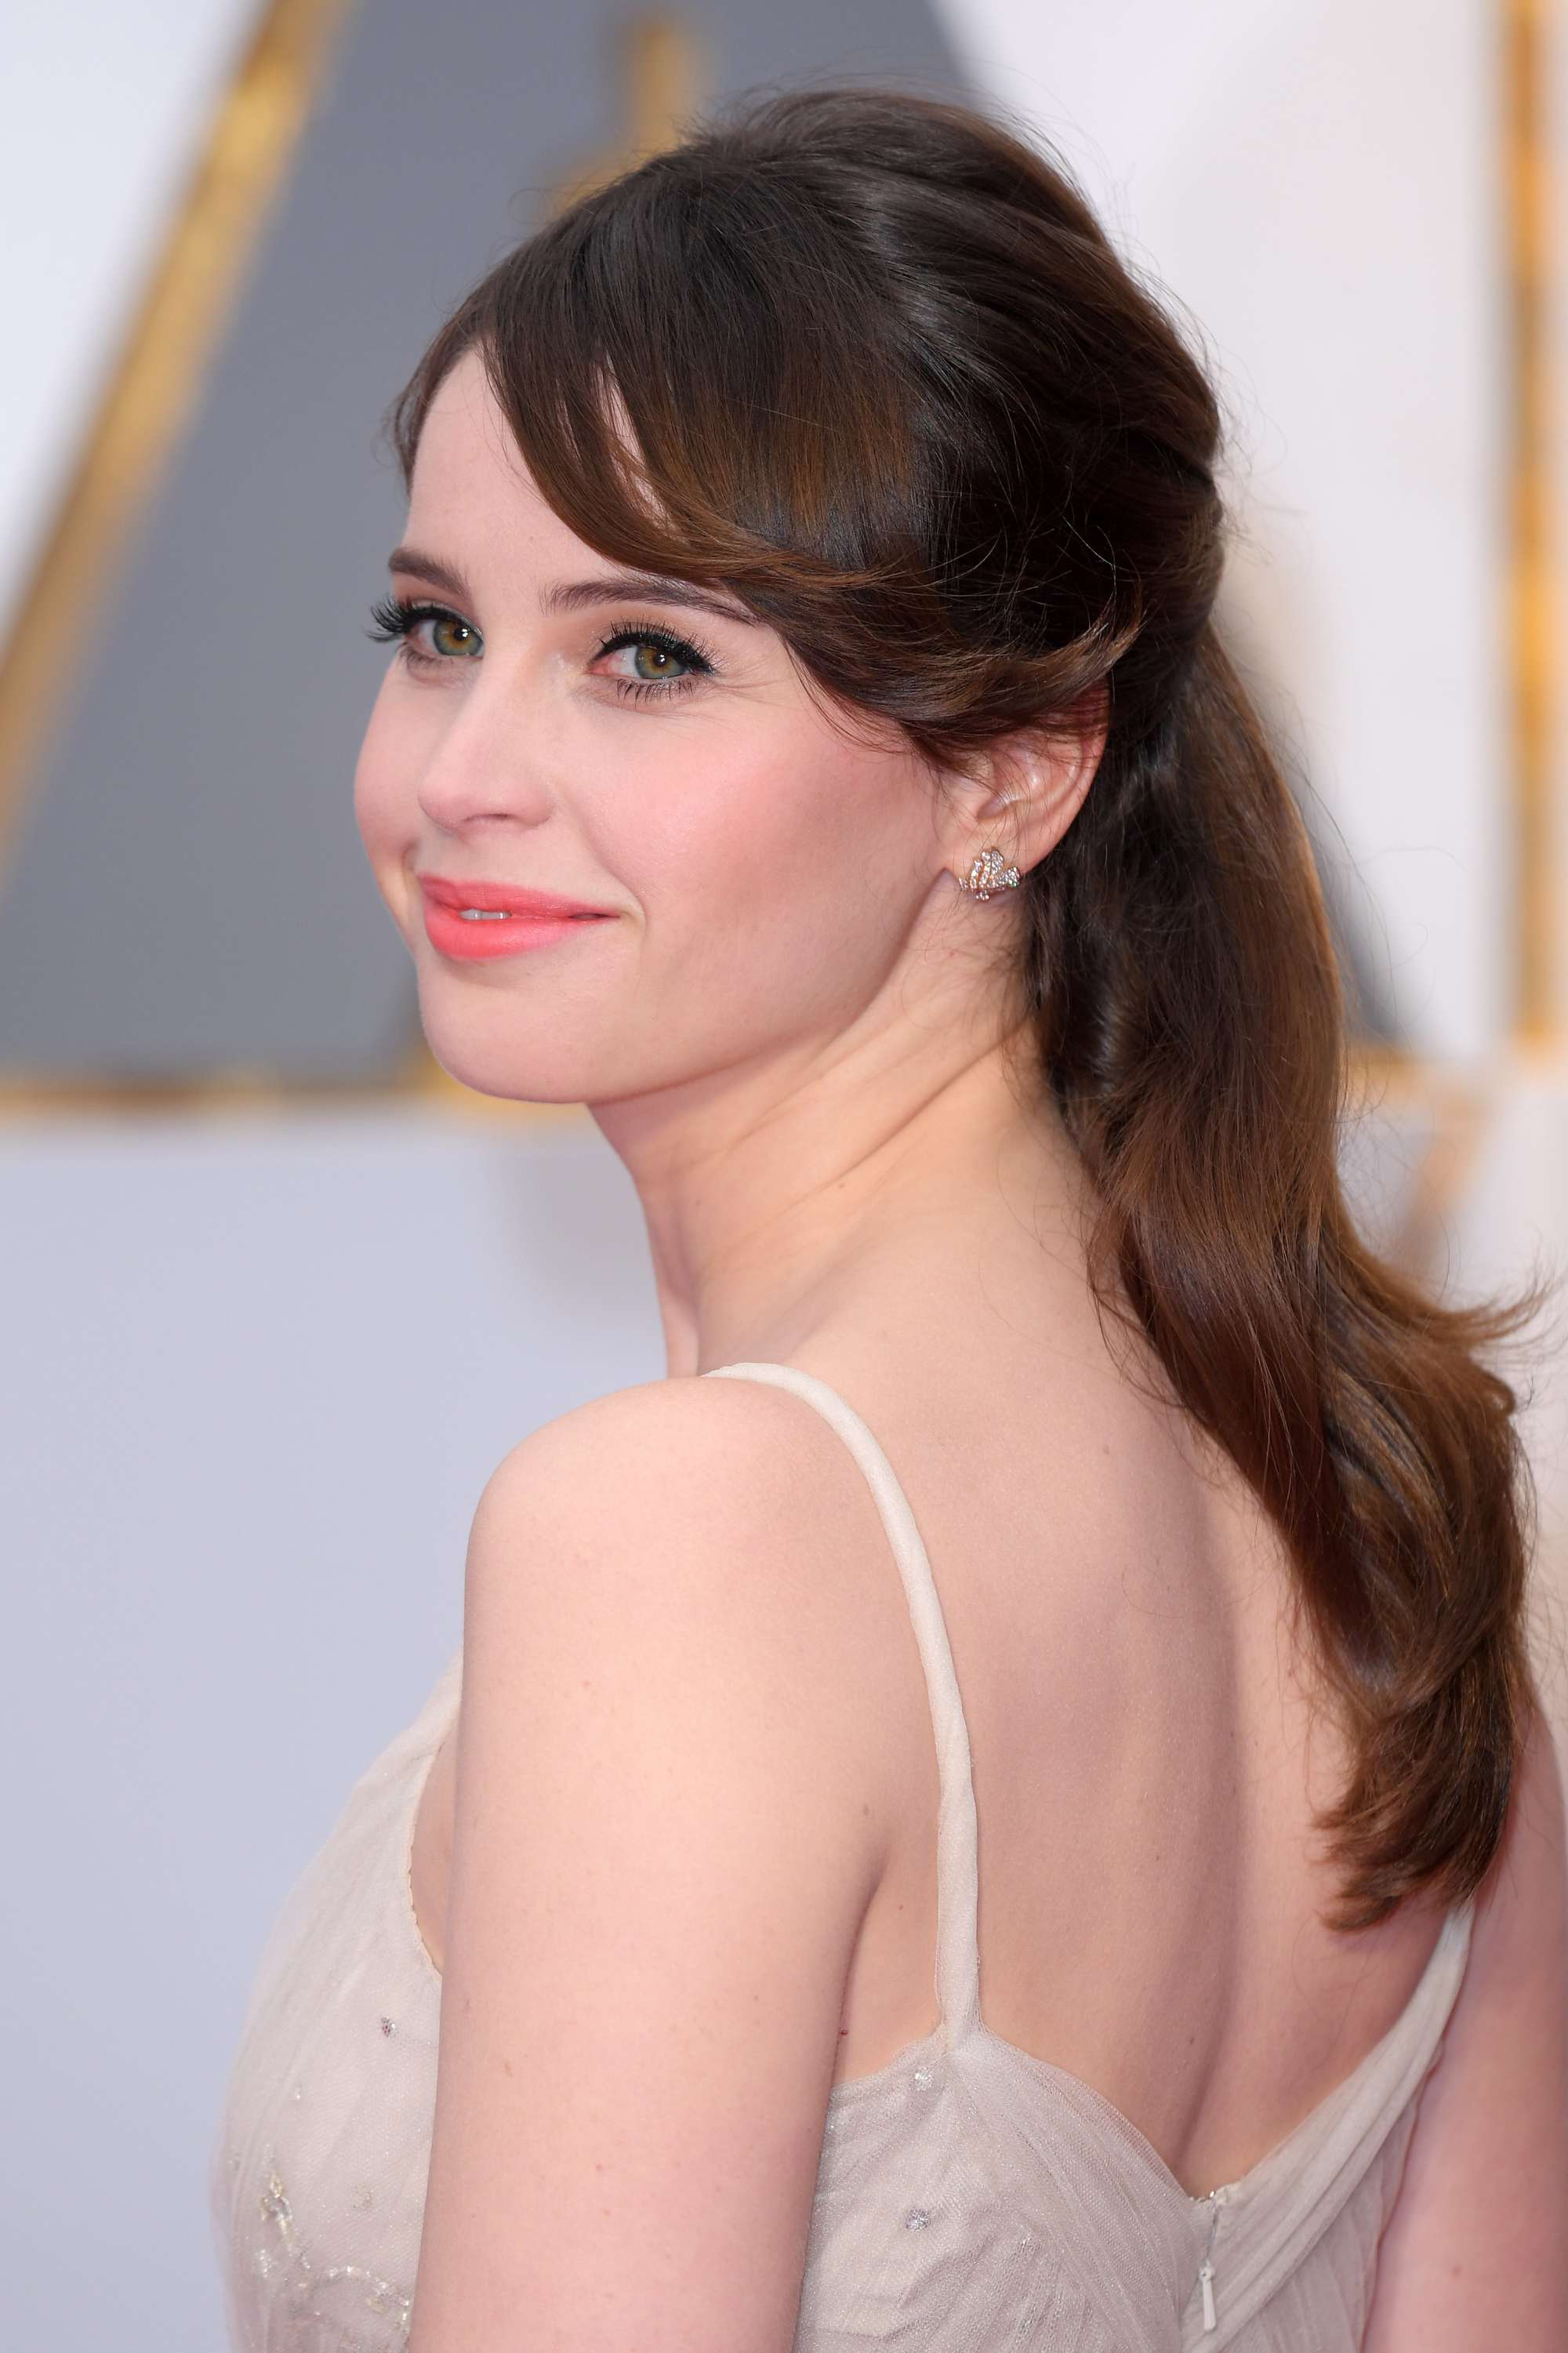 felicity jones wearing a cream glittery dress with her brunette hair in a half up half down hairstyle